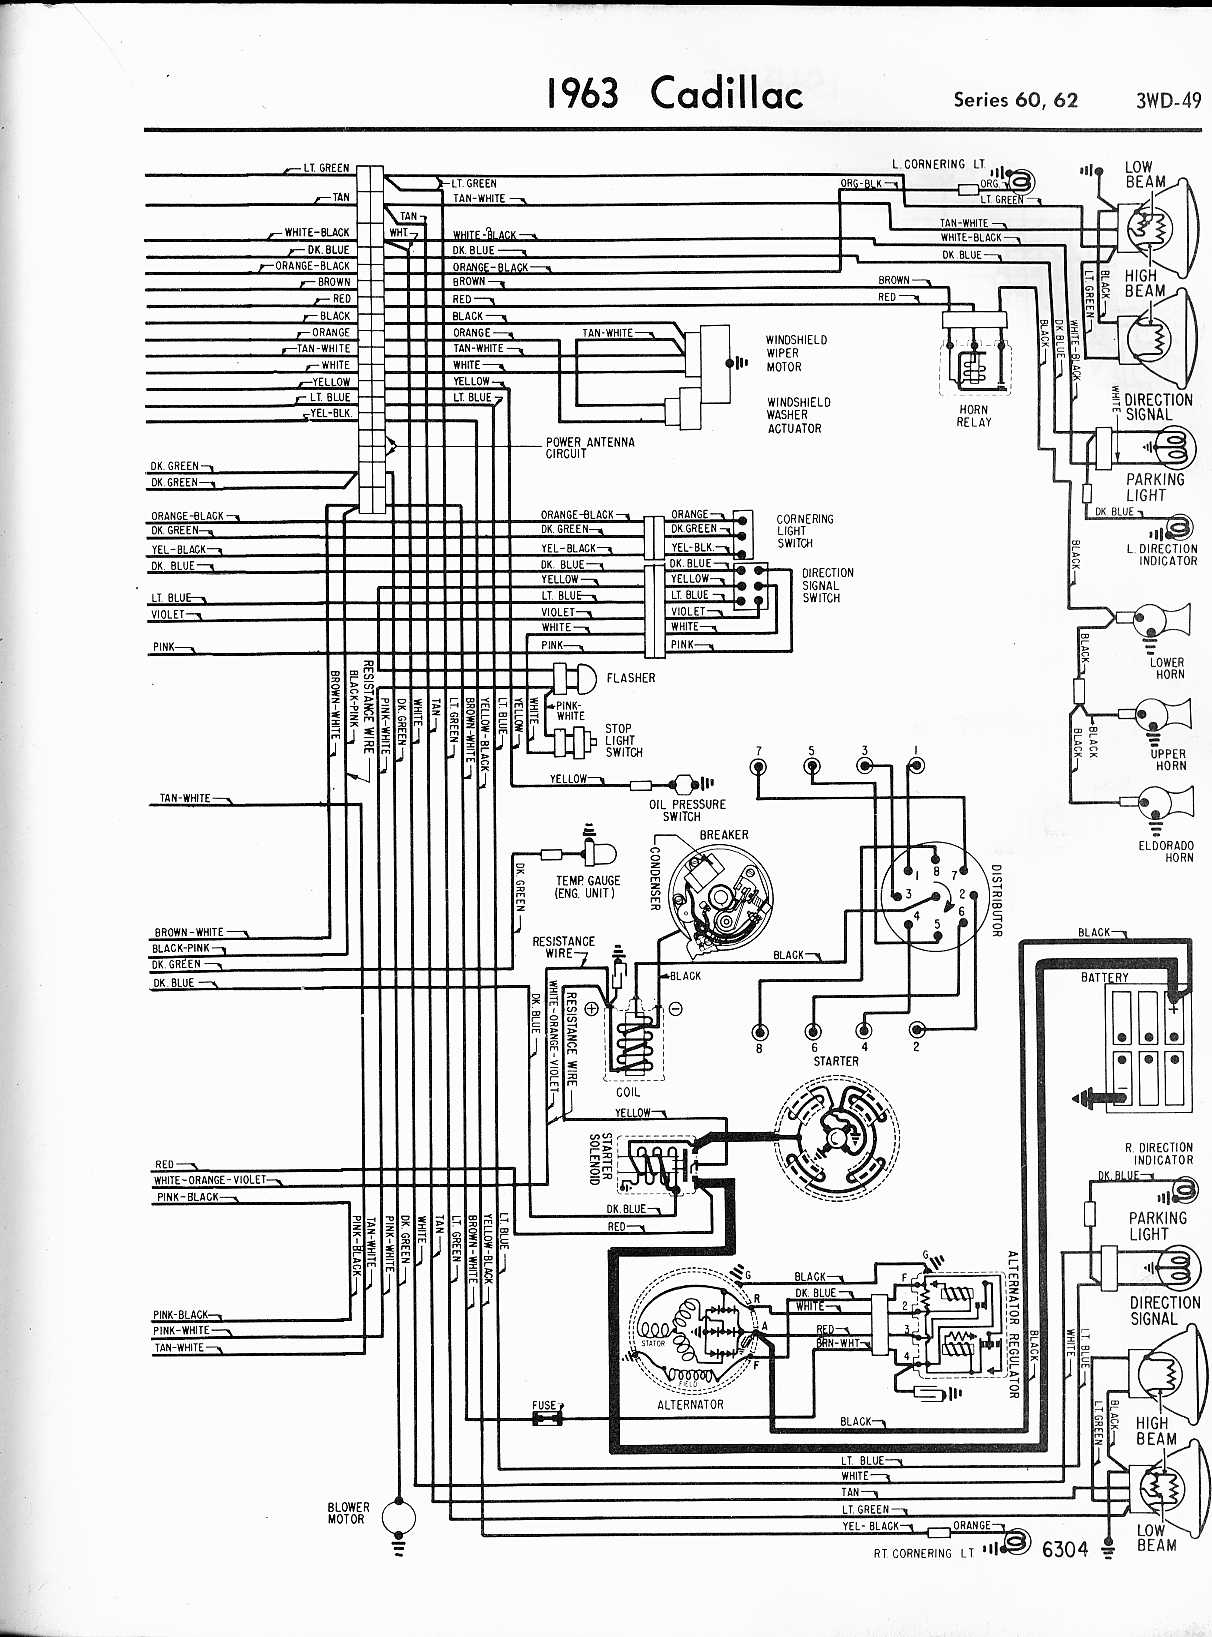 wiring diagram for 1998 cadillac deville wiring 1964 cadillac fuse box diagram 1964 auto wiring diagram schematic on wiring diagram for 1998 cadillac